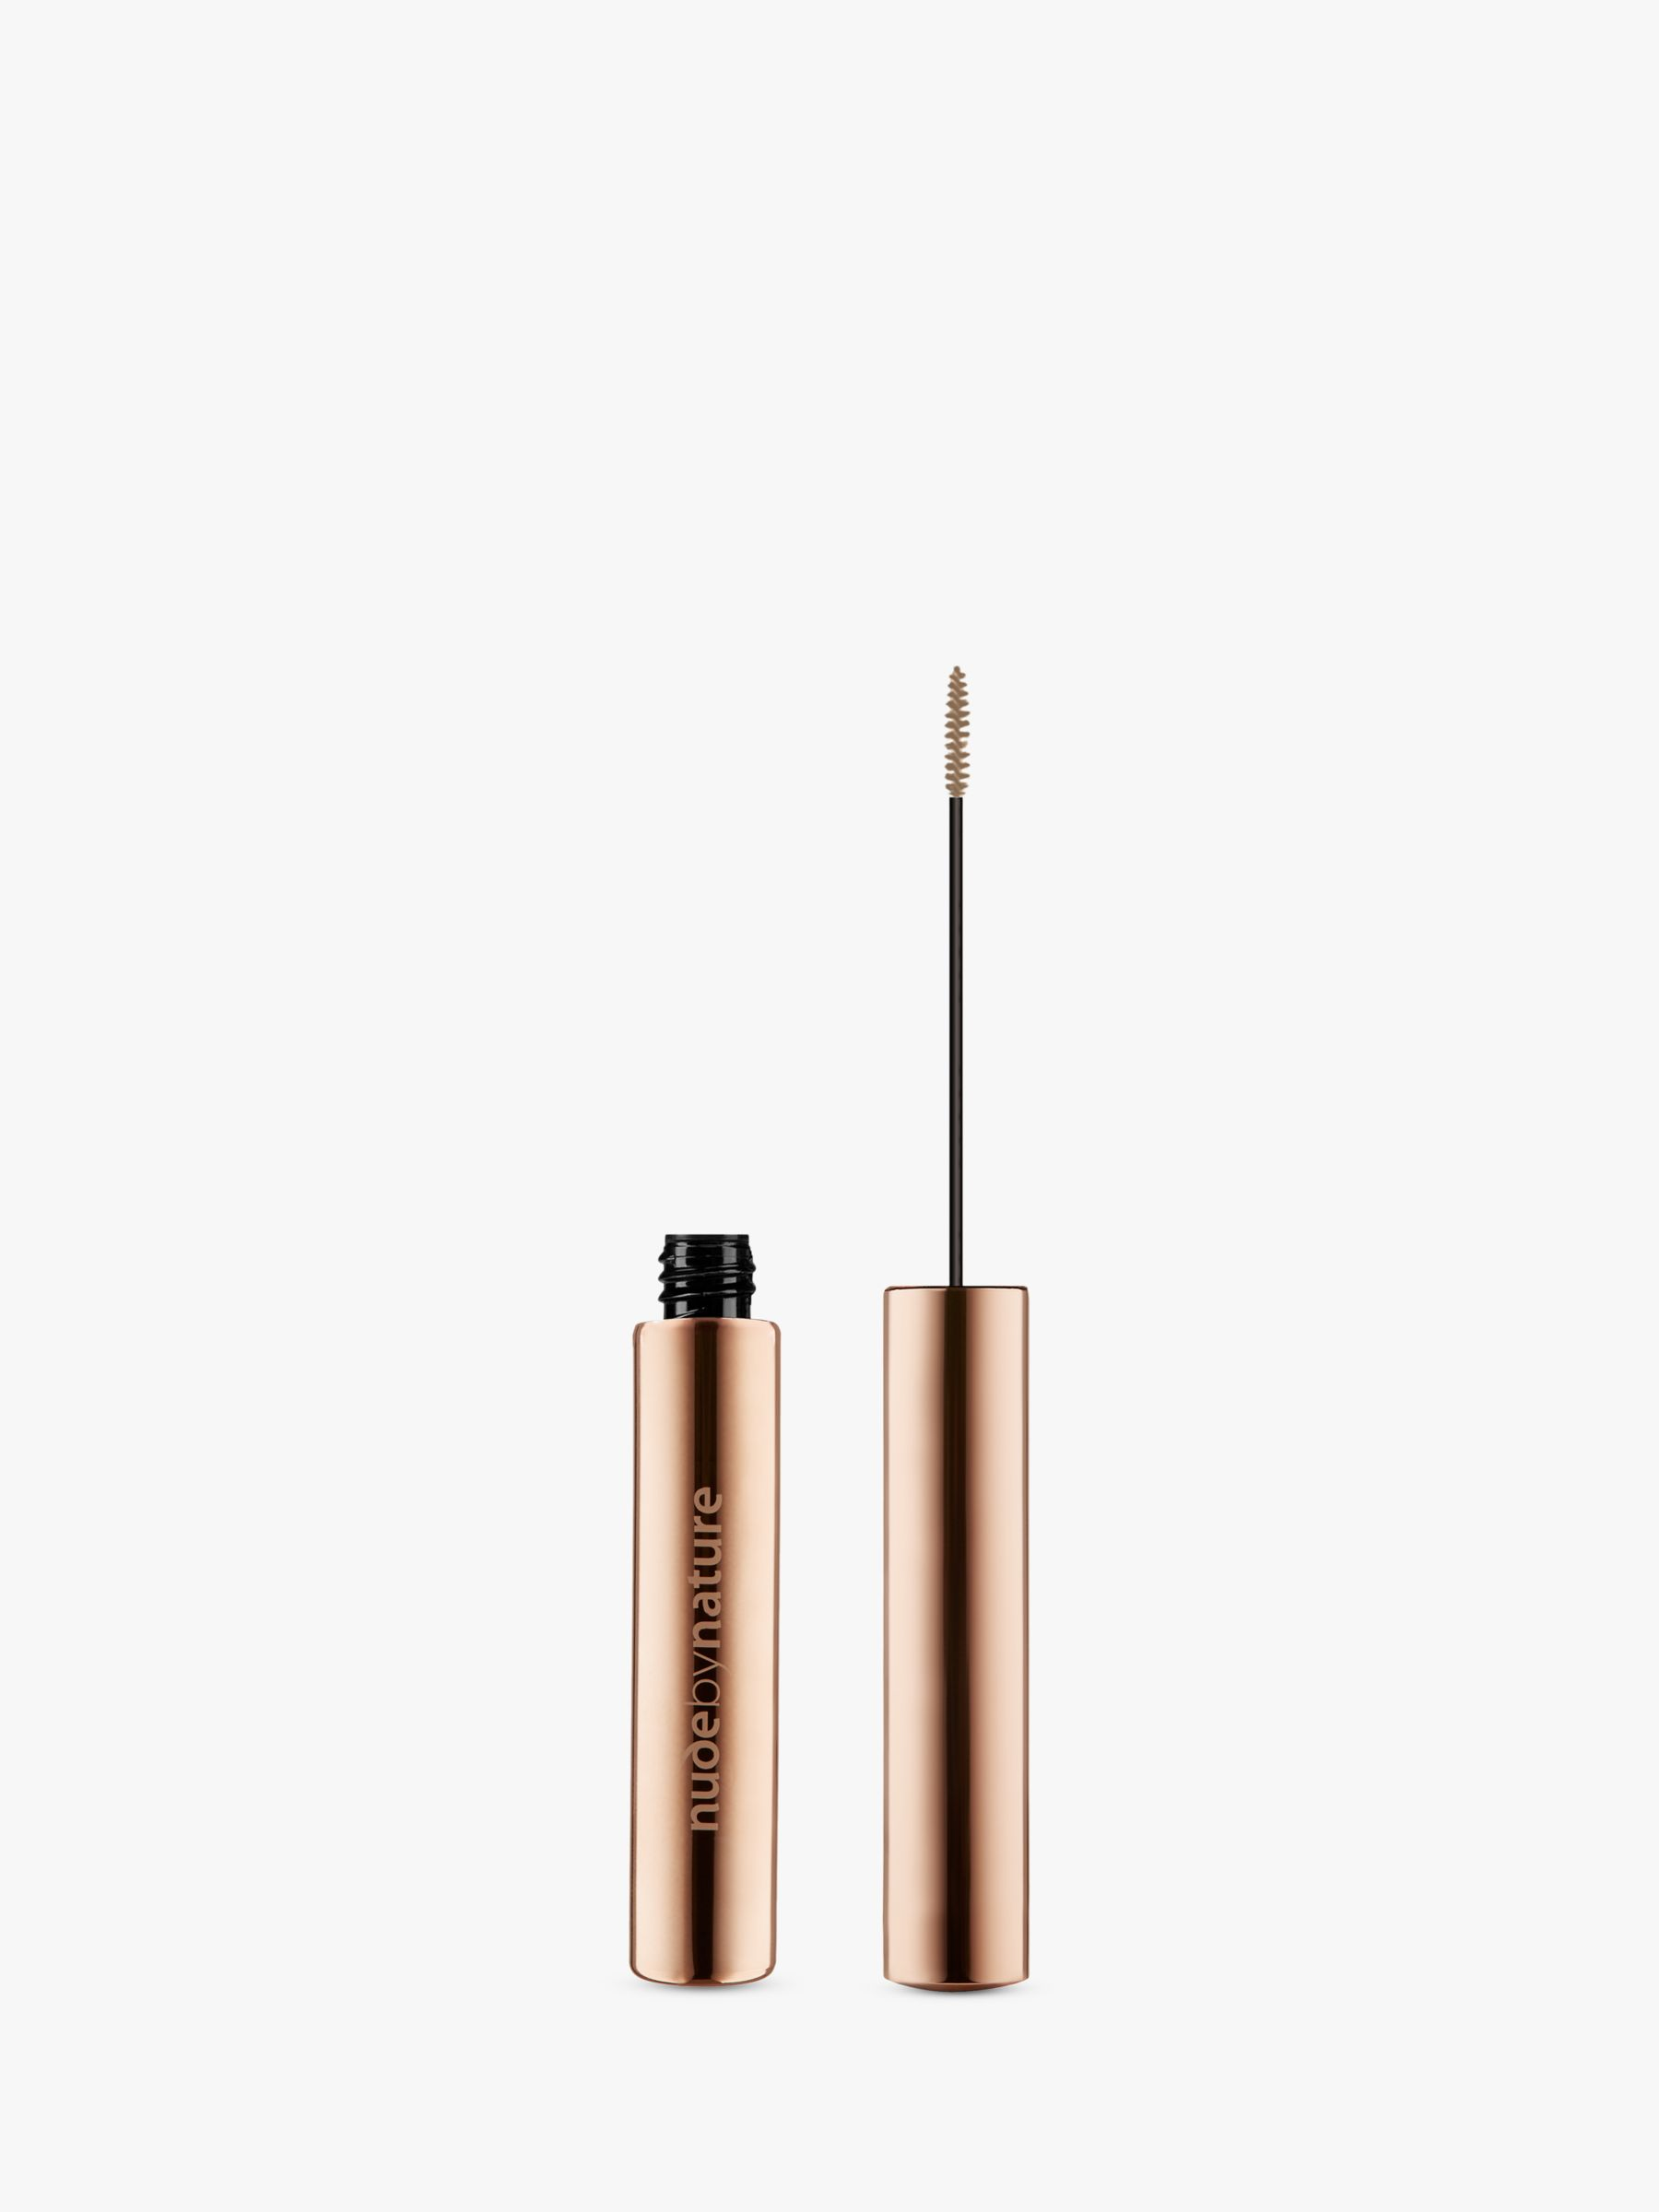 Nude by Nature Nude by Nature Precision Brow Mascara